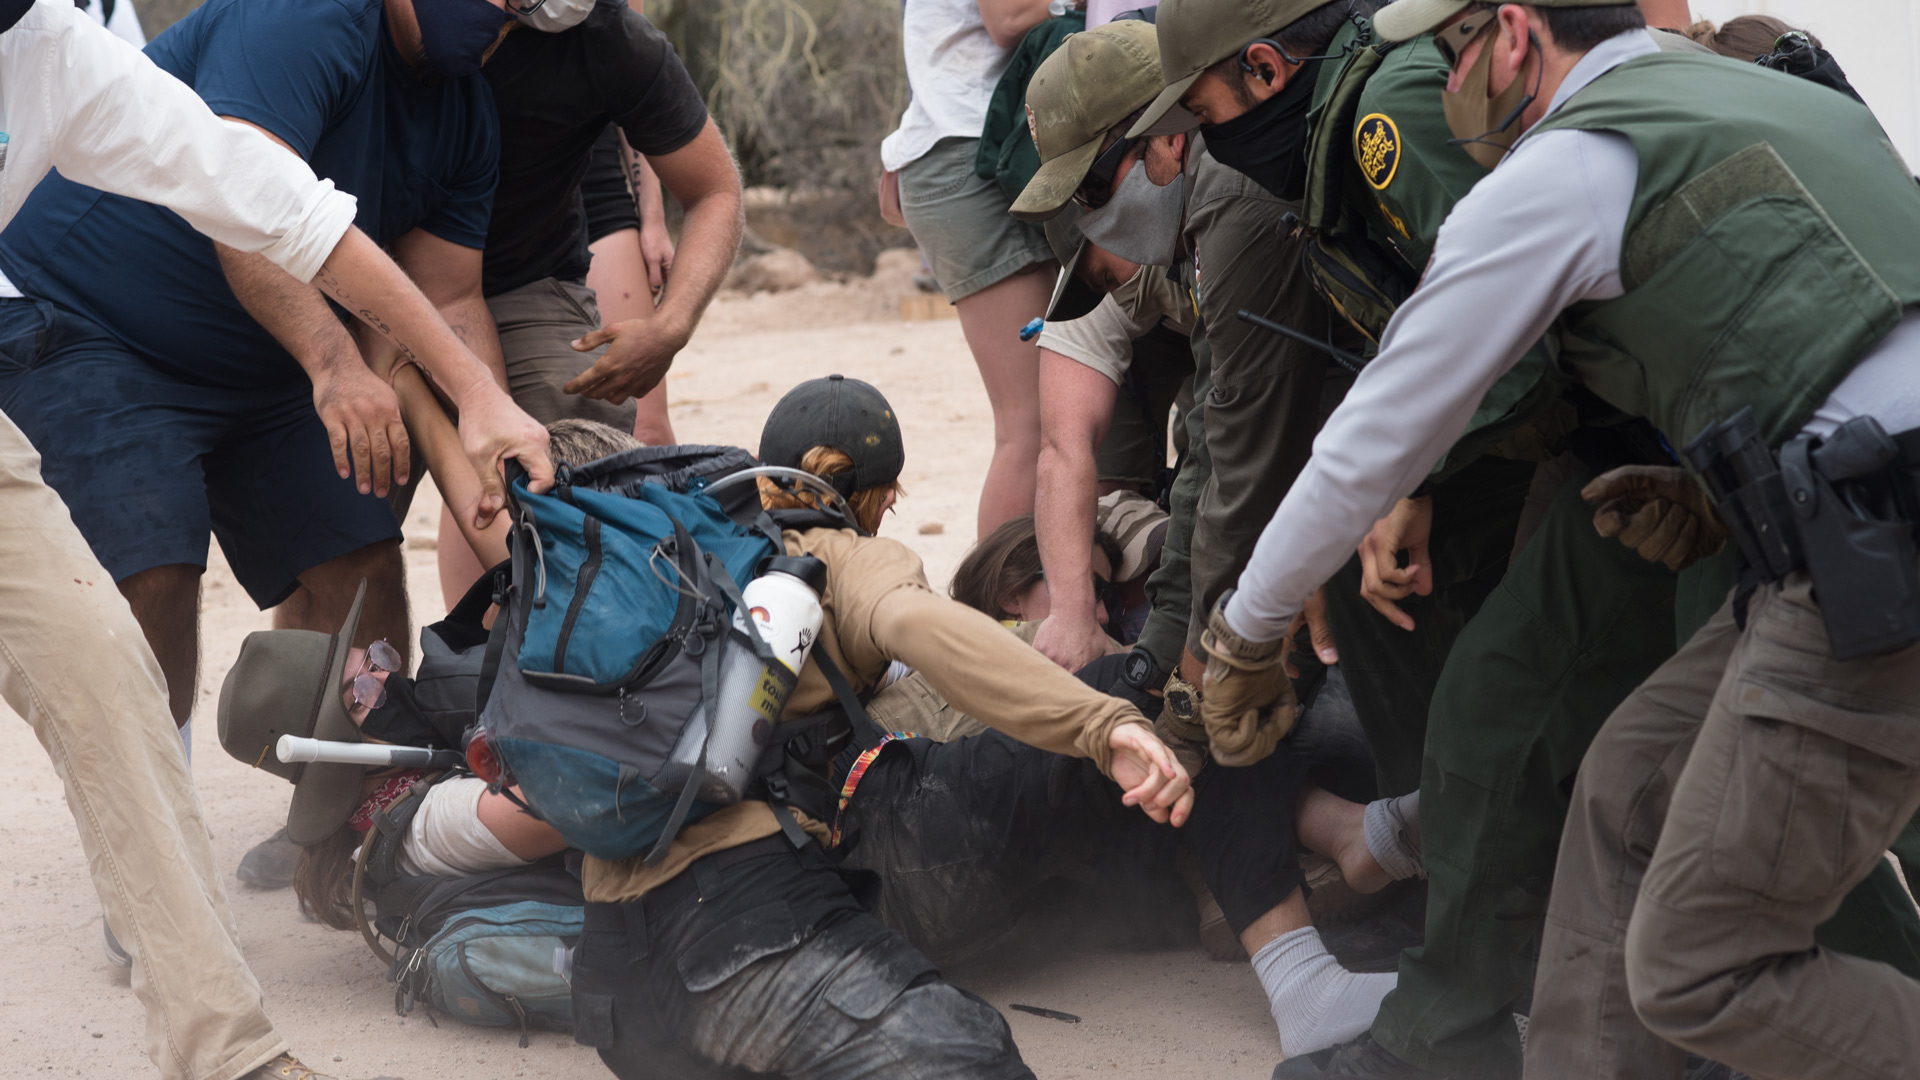 Demonstrators struggle as National Park Service officers and Border Patrol agents try to pull people from a fallen human chain during a demonstration at Organ Pipe Cactus National Monument on Sept. 21, 2020.